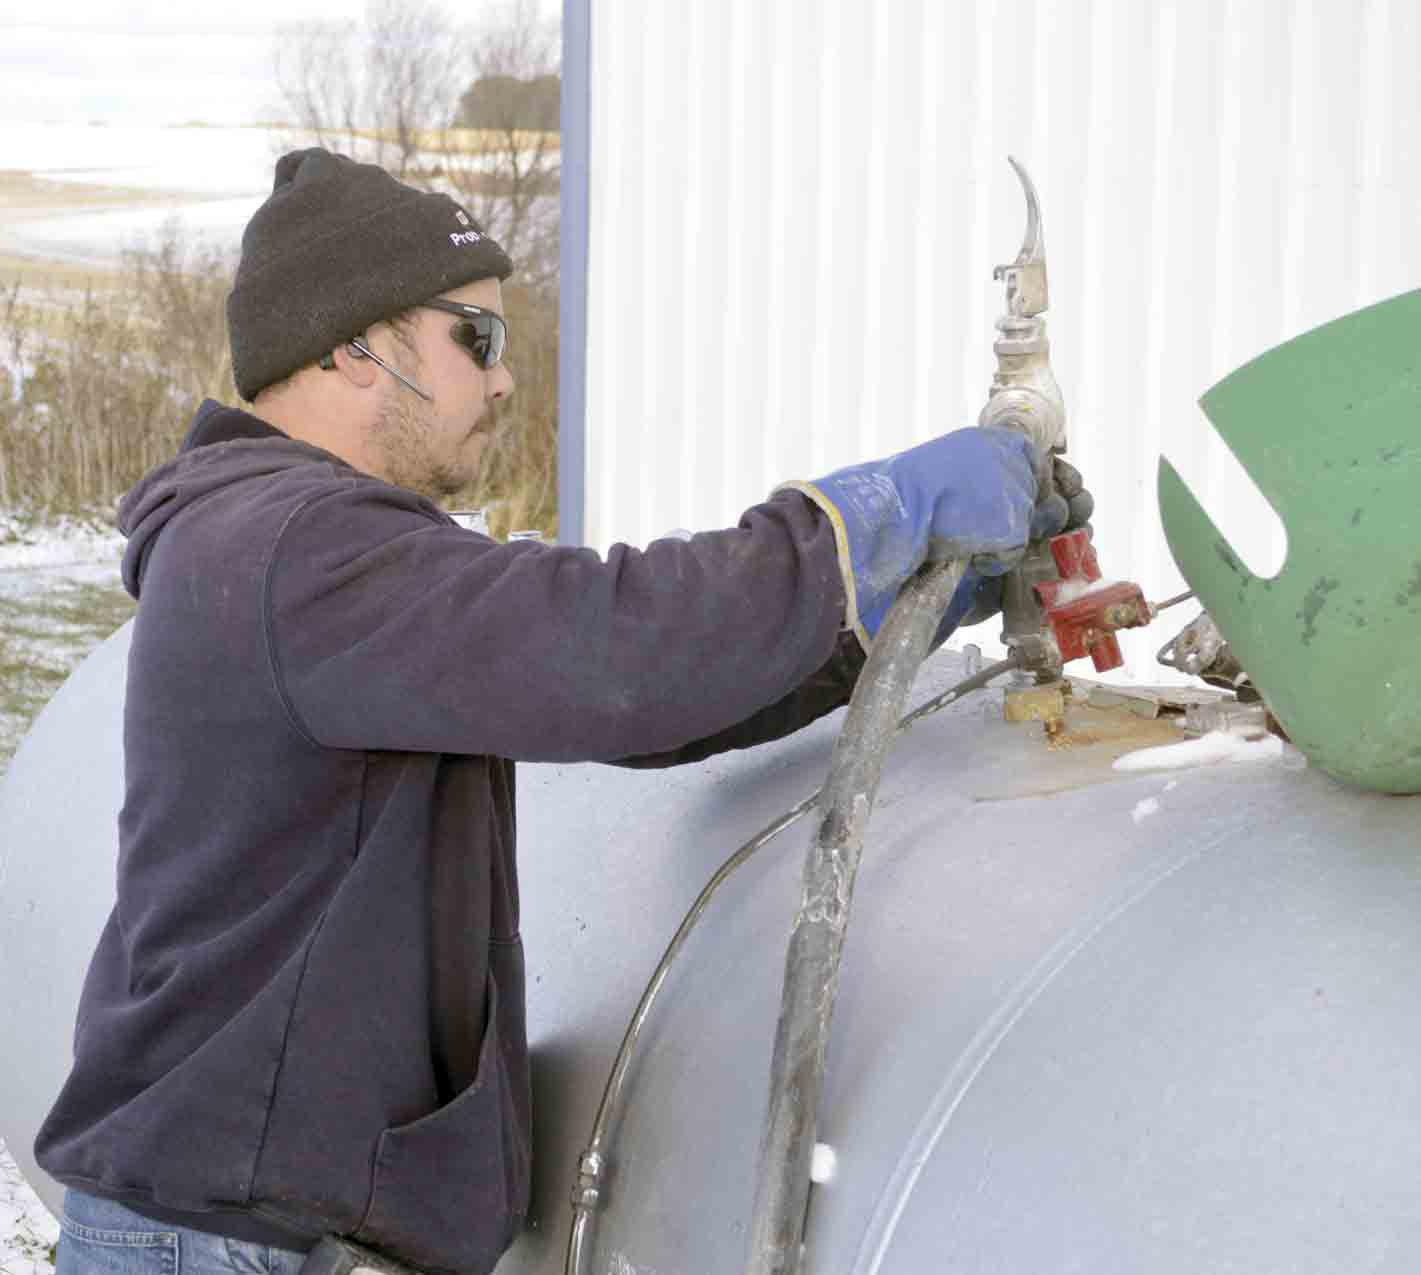 Shawn Alber, a certified propane specialist with AgVantage FS, fills a liquid propane tank on Monday afternoon in Fayette County. Much of the Midwest is experiencing difficulties with trying to keep farmers stocked with LP as a mixture of factors have contributed to a heavy-use fall that has...